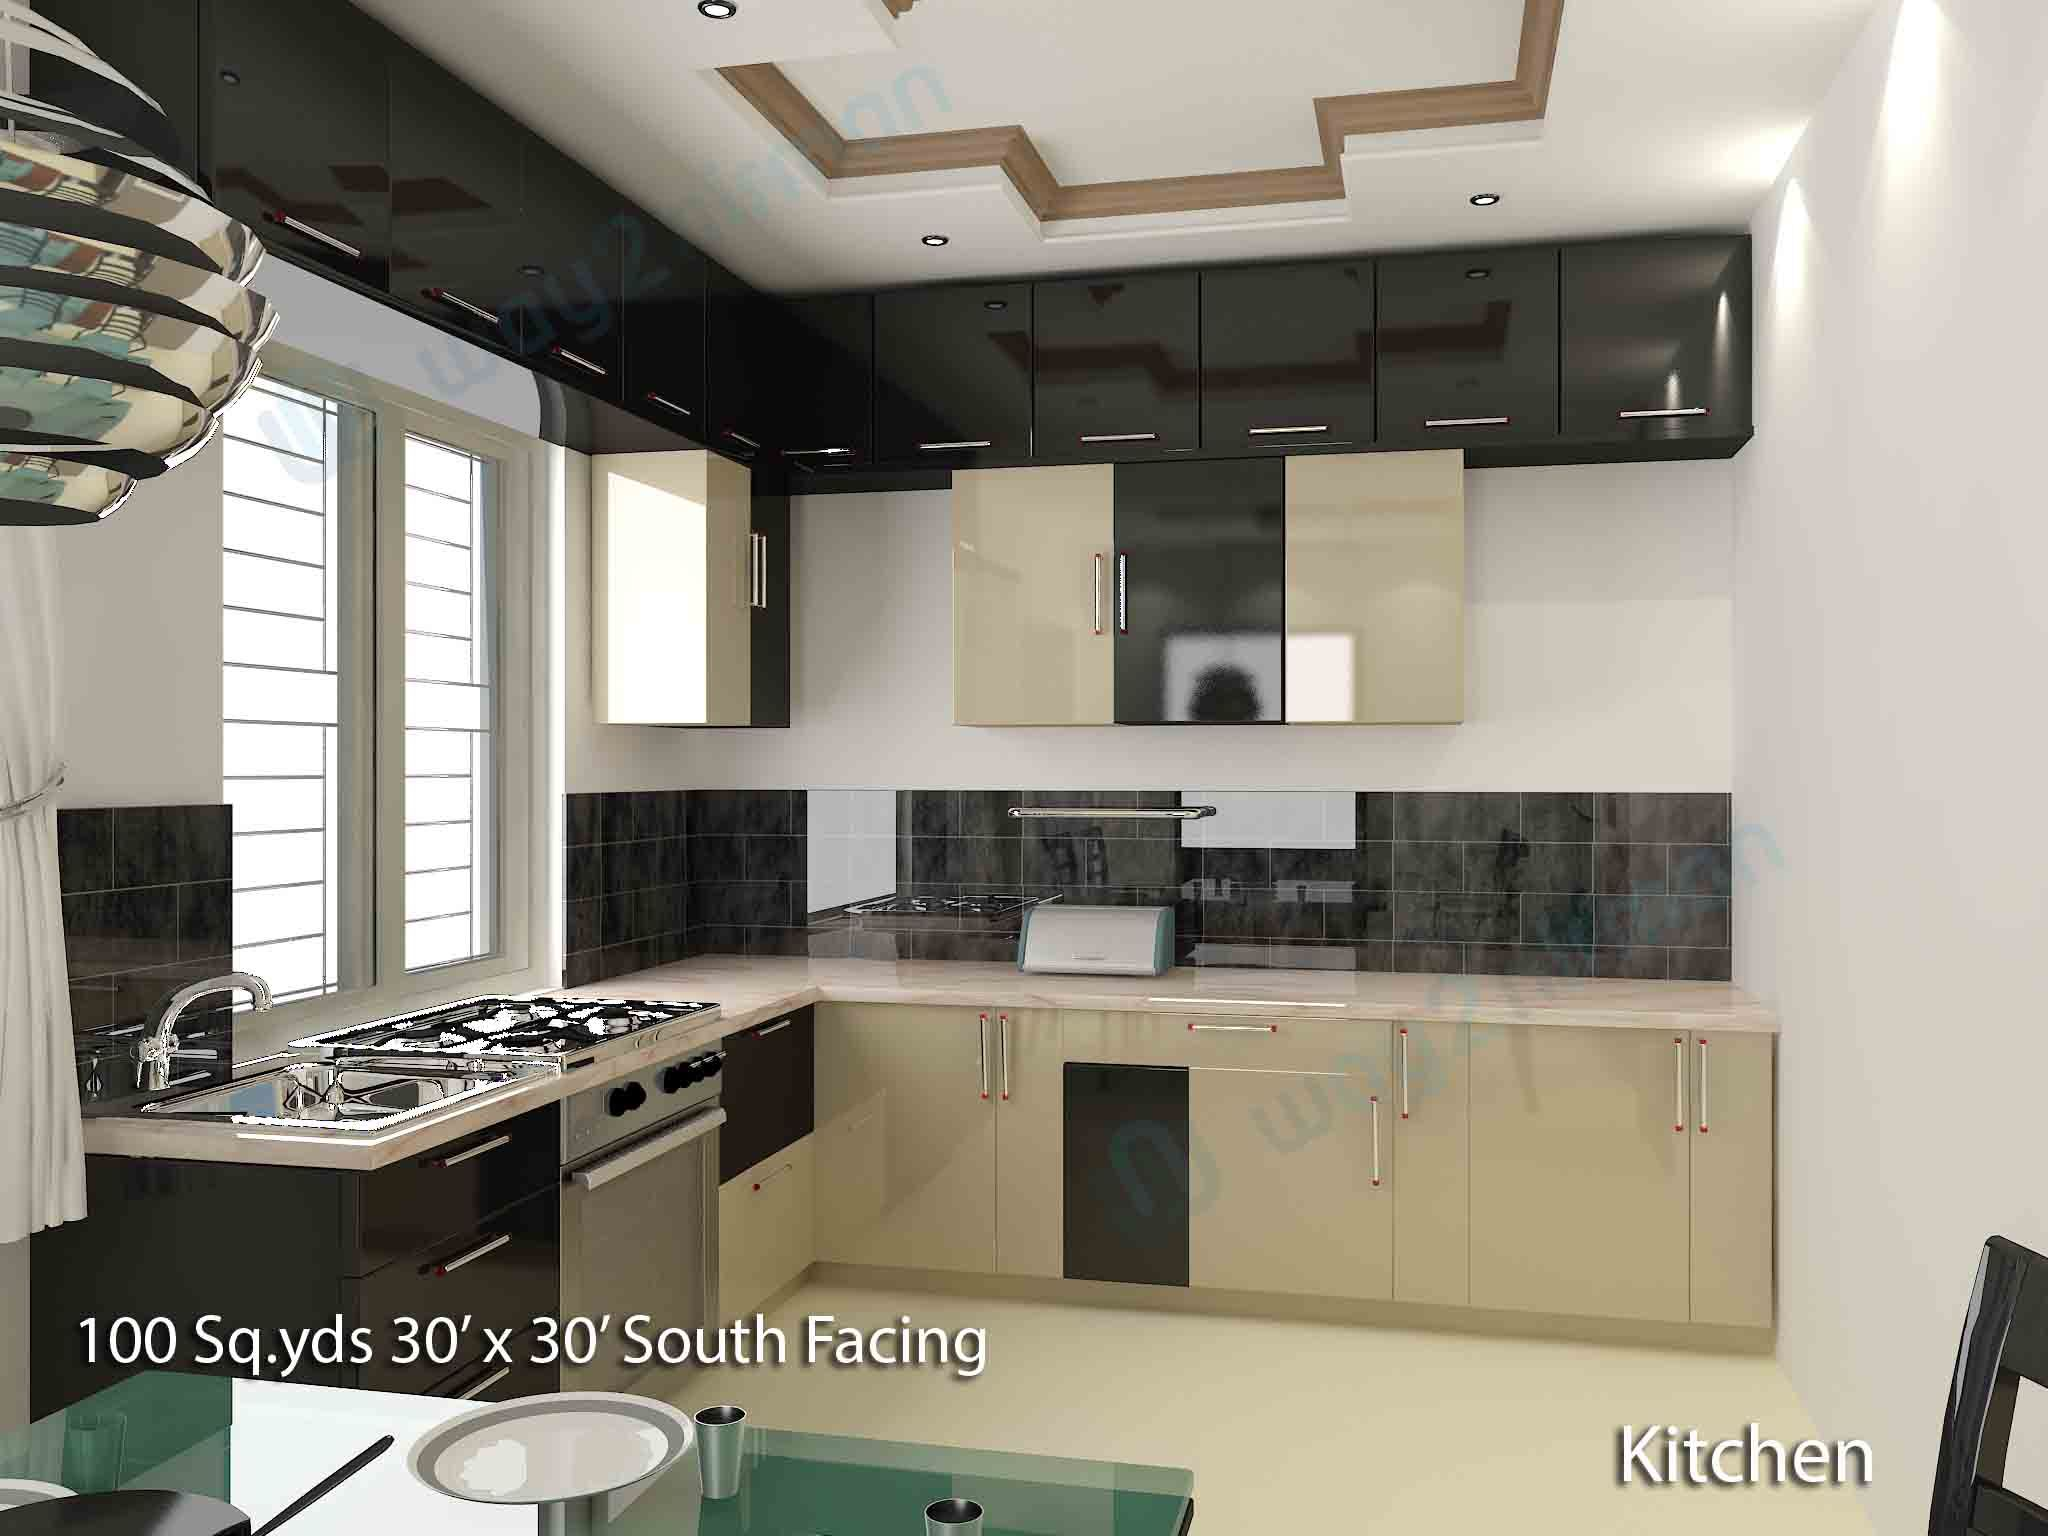 . Download Free Beautiful kitchen interior designs   100 sq yds 30x30